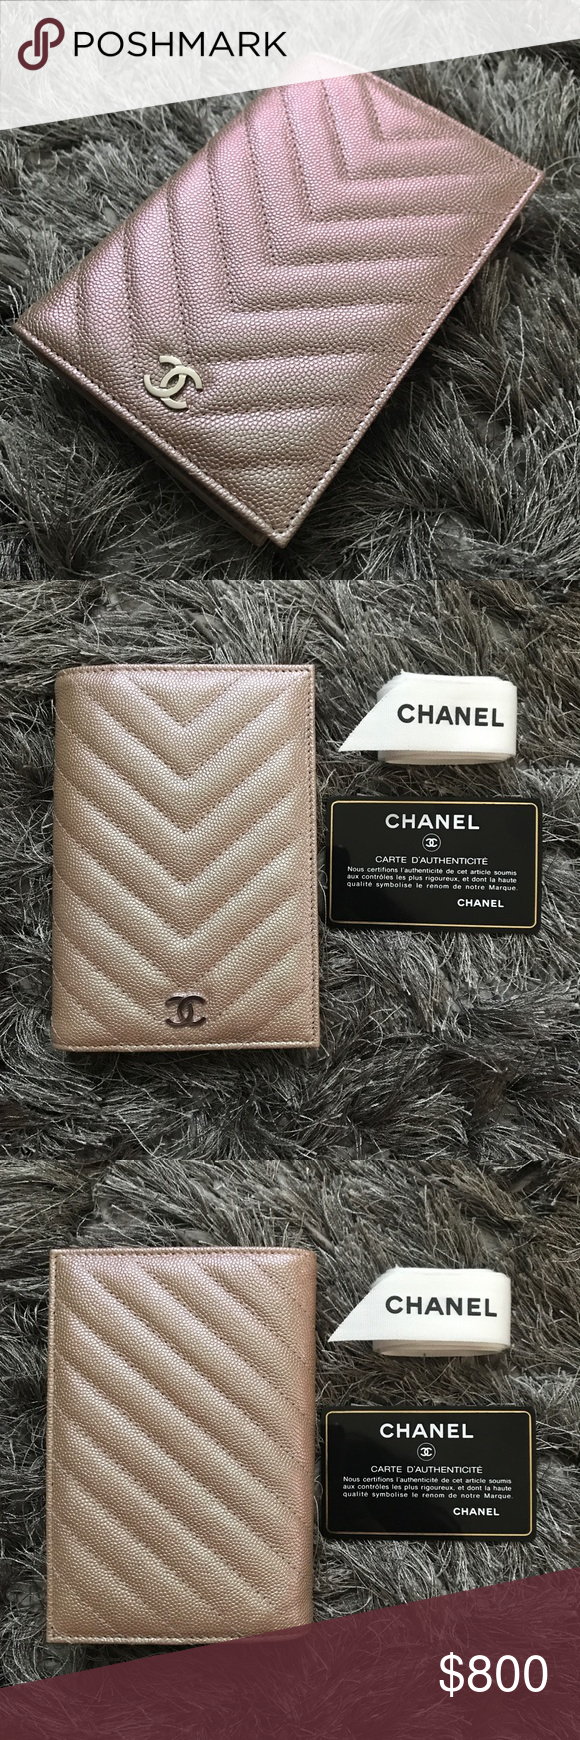 69a4f95987ea Chanel Passport Holder in Light (Rose) Gold ✨AUTHENTIC✨ BRAND NEW Chanel  Iridescent Chevron Passport Holder in Light (Rose) Gold Caviar Leather with  ...